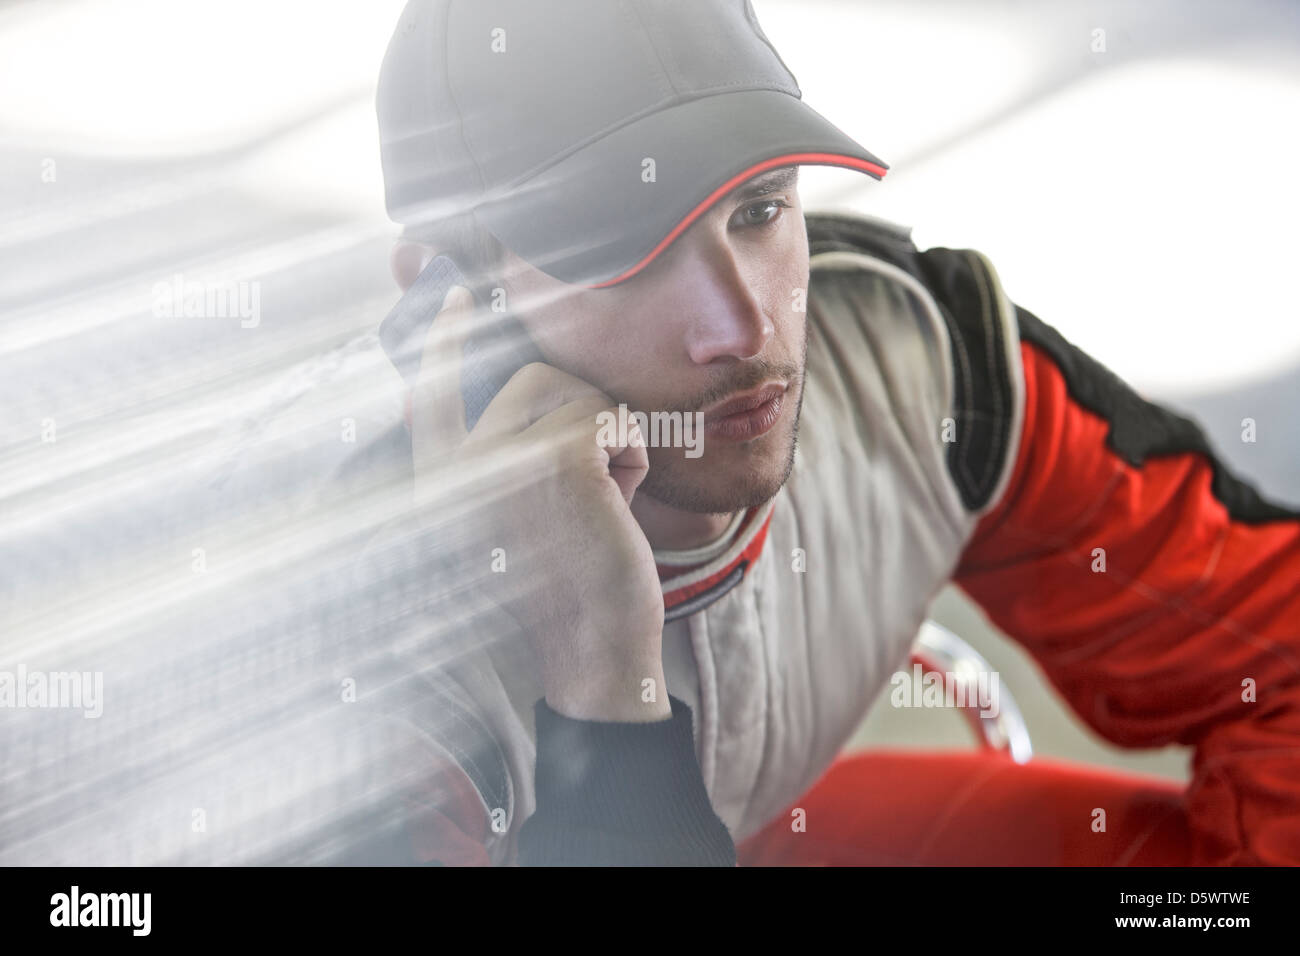 Racer talking on cell phone - Stock Image